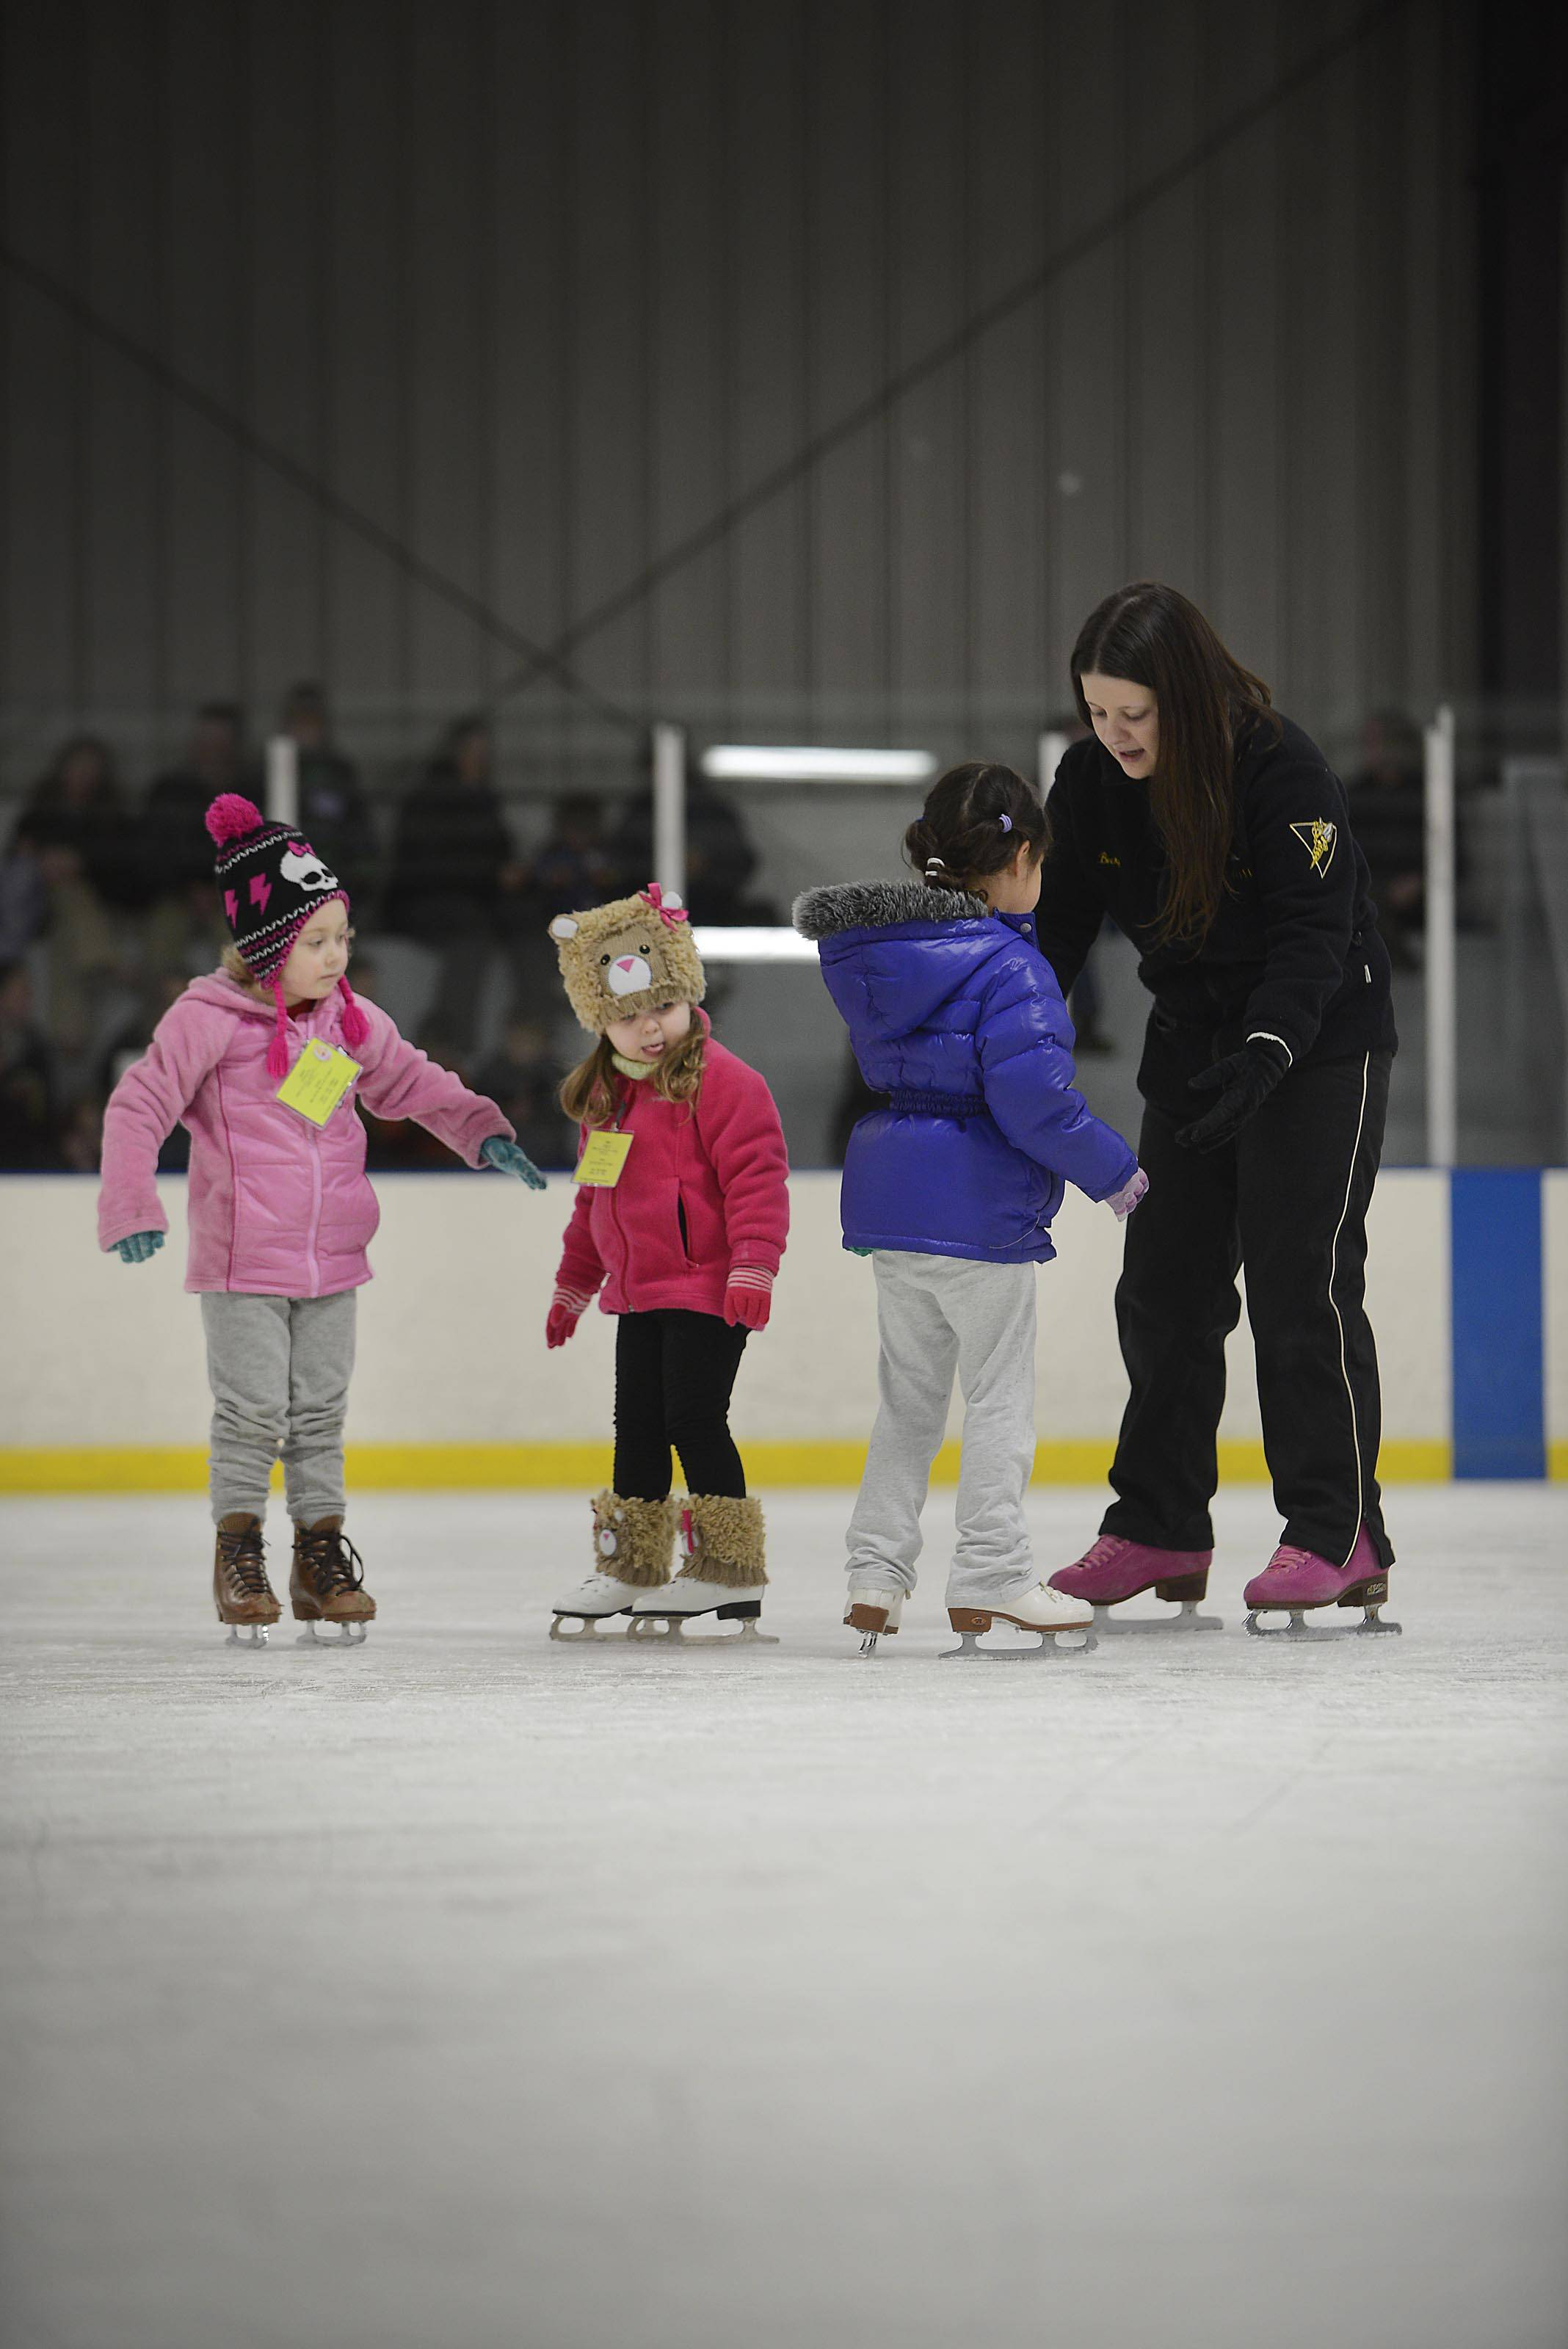 Instructor Becky Spillar works with 4-5 year olds in the Snowplow Sam beginers skating class at Crystal Ice House Thursday in Crystal Lake. Some children start even younger.